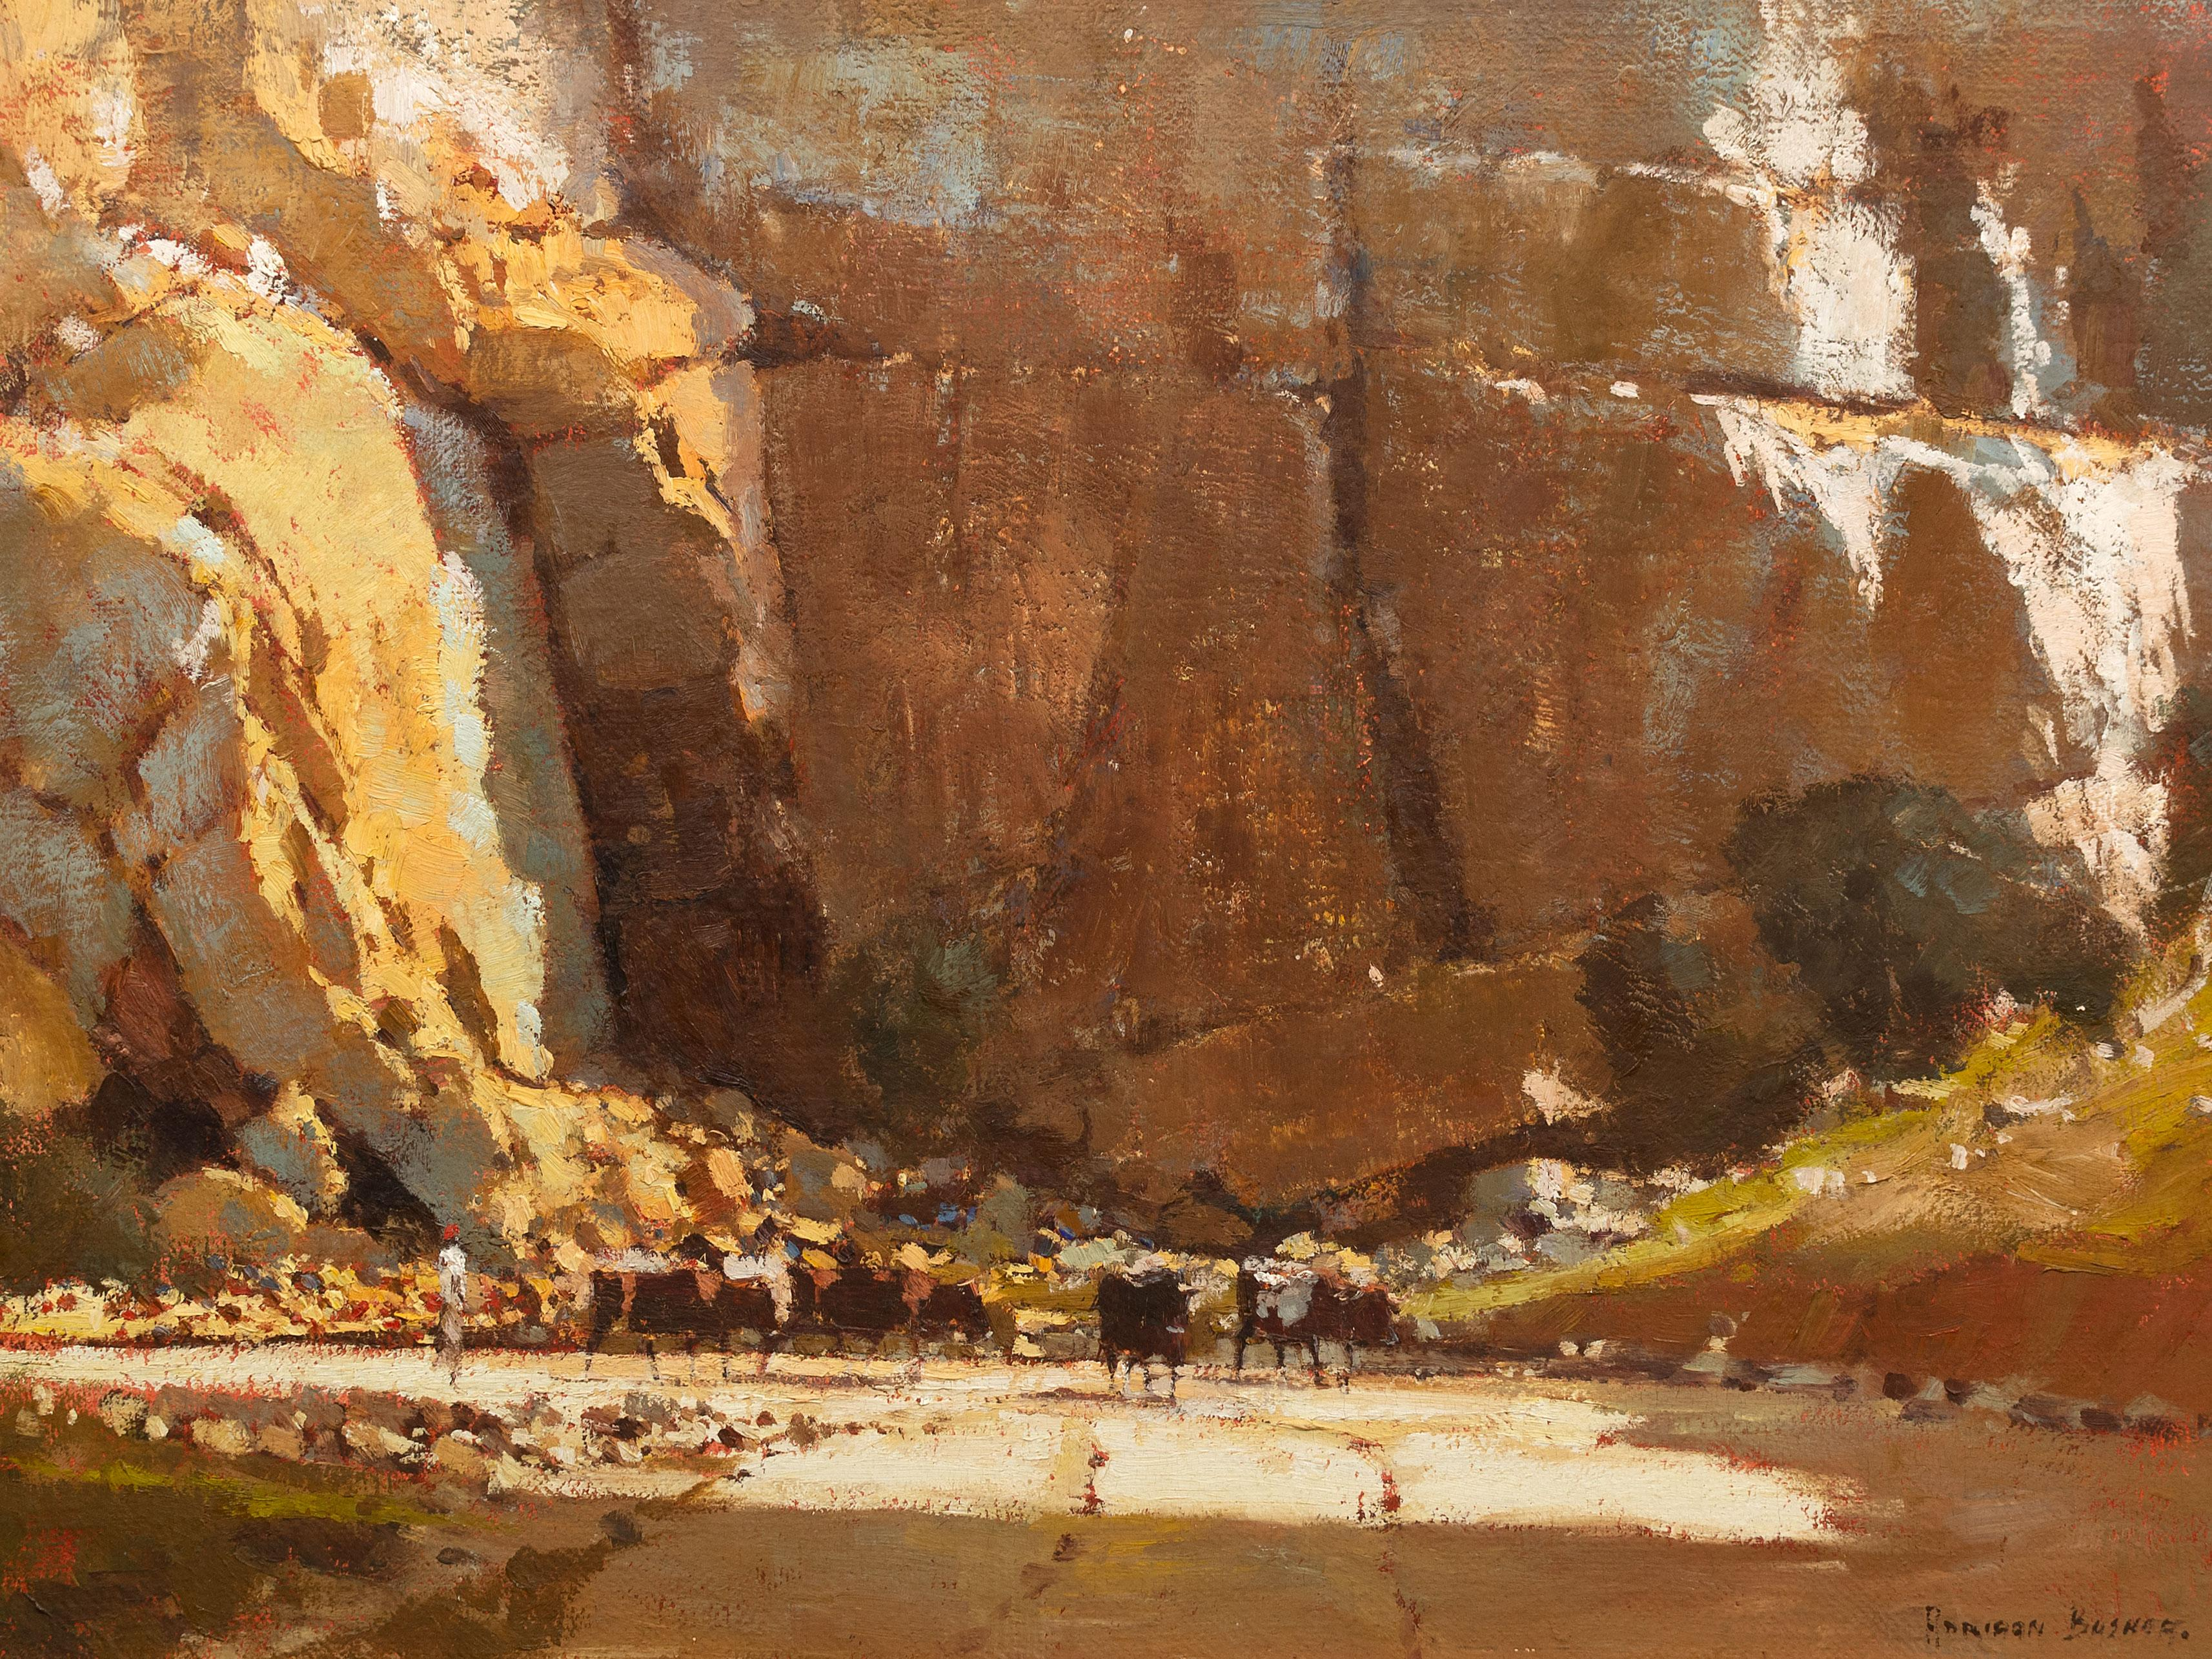 Adriaan Boshoff (SA 1935 - 2007) Oil, Cattle Being Herded Through a Gorge, Signed, 60 x 90